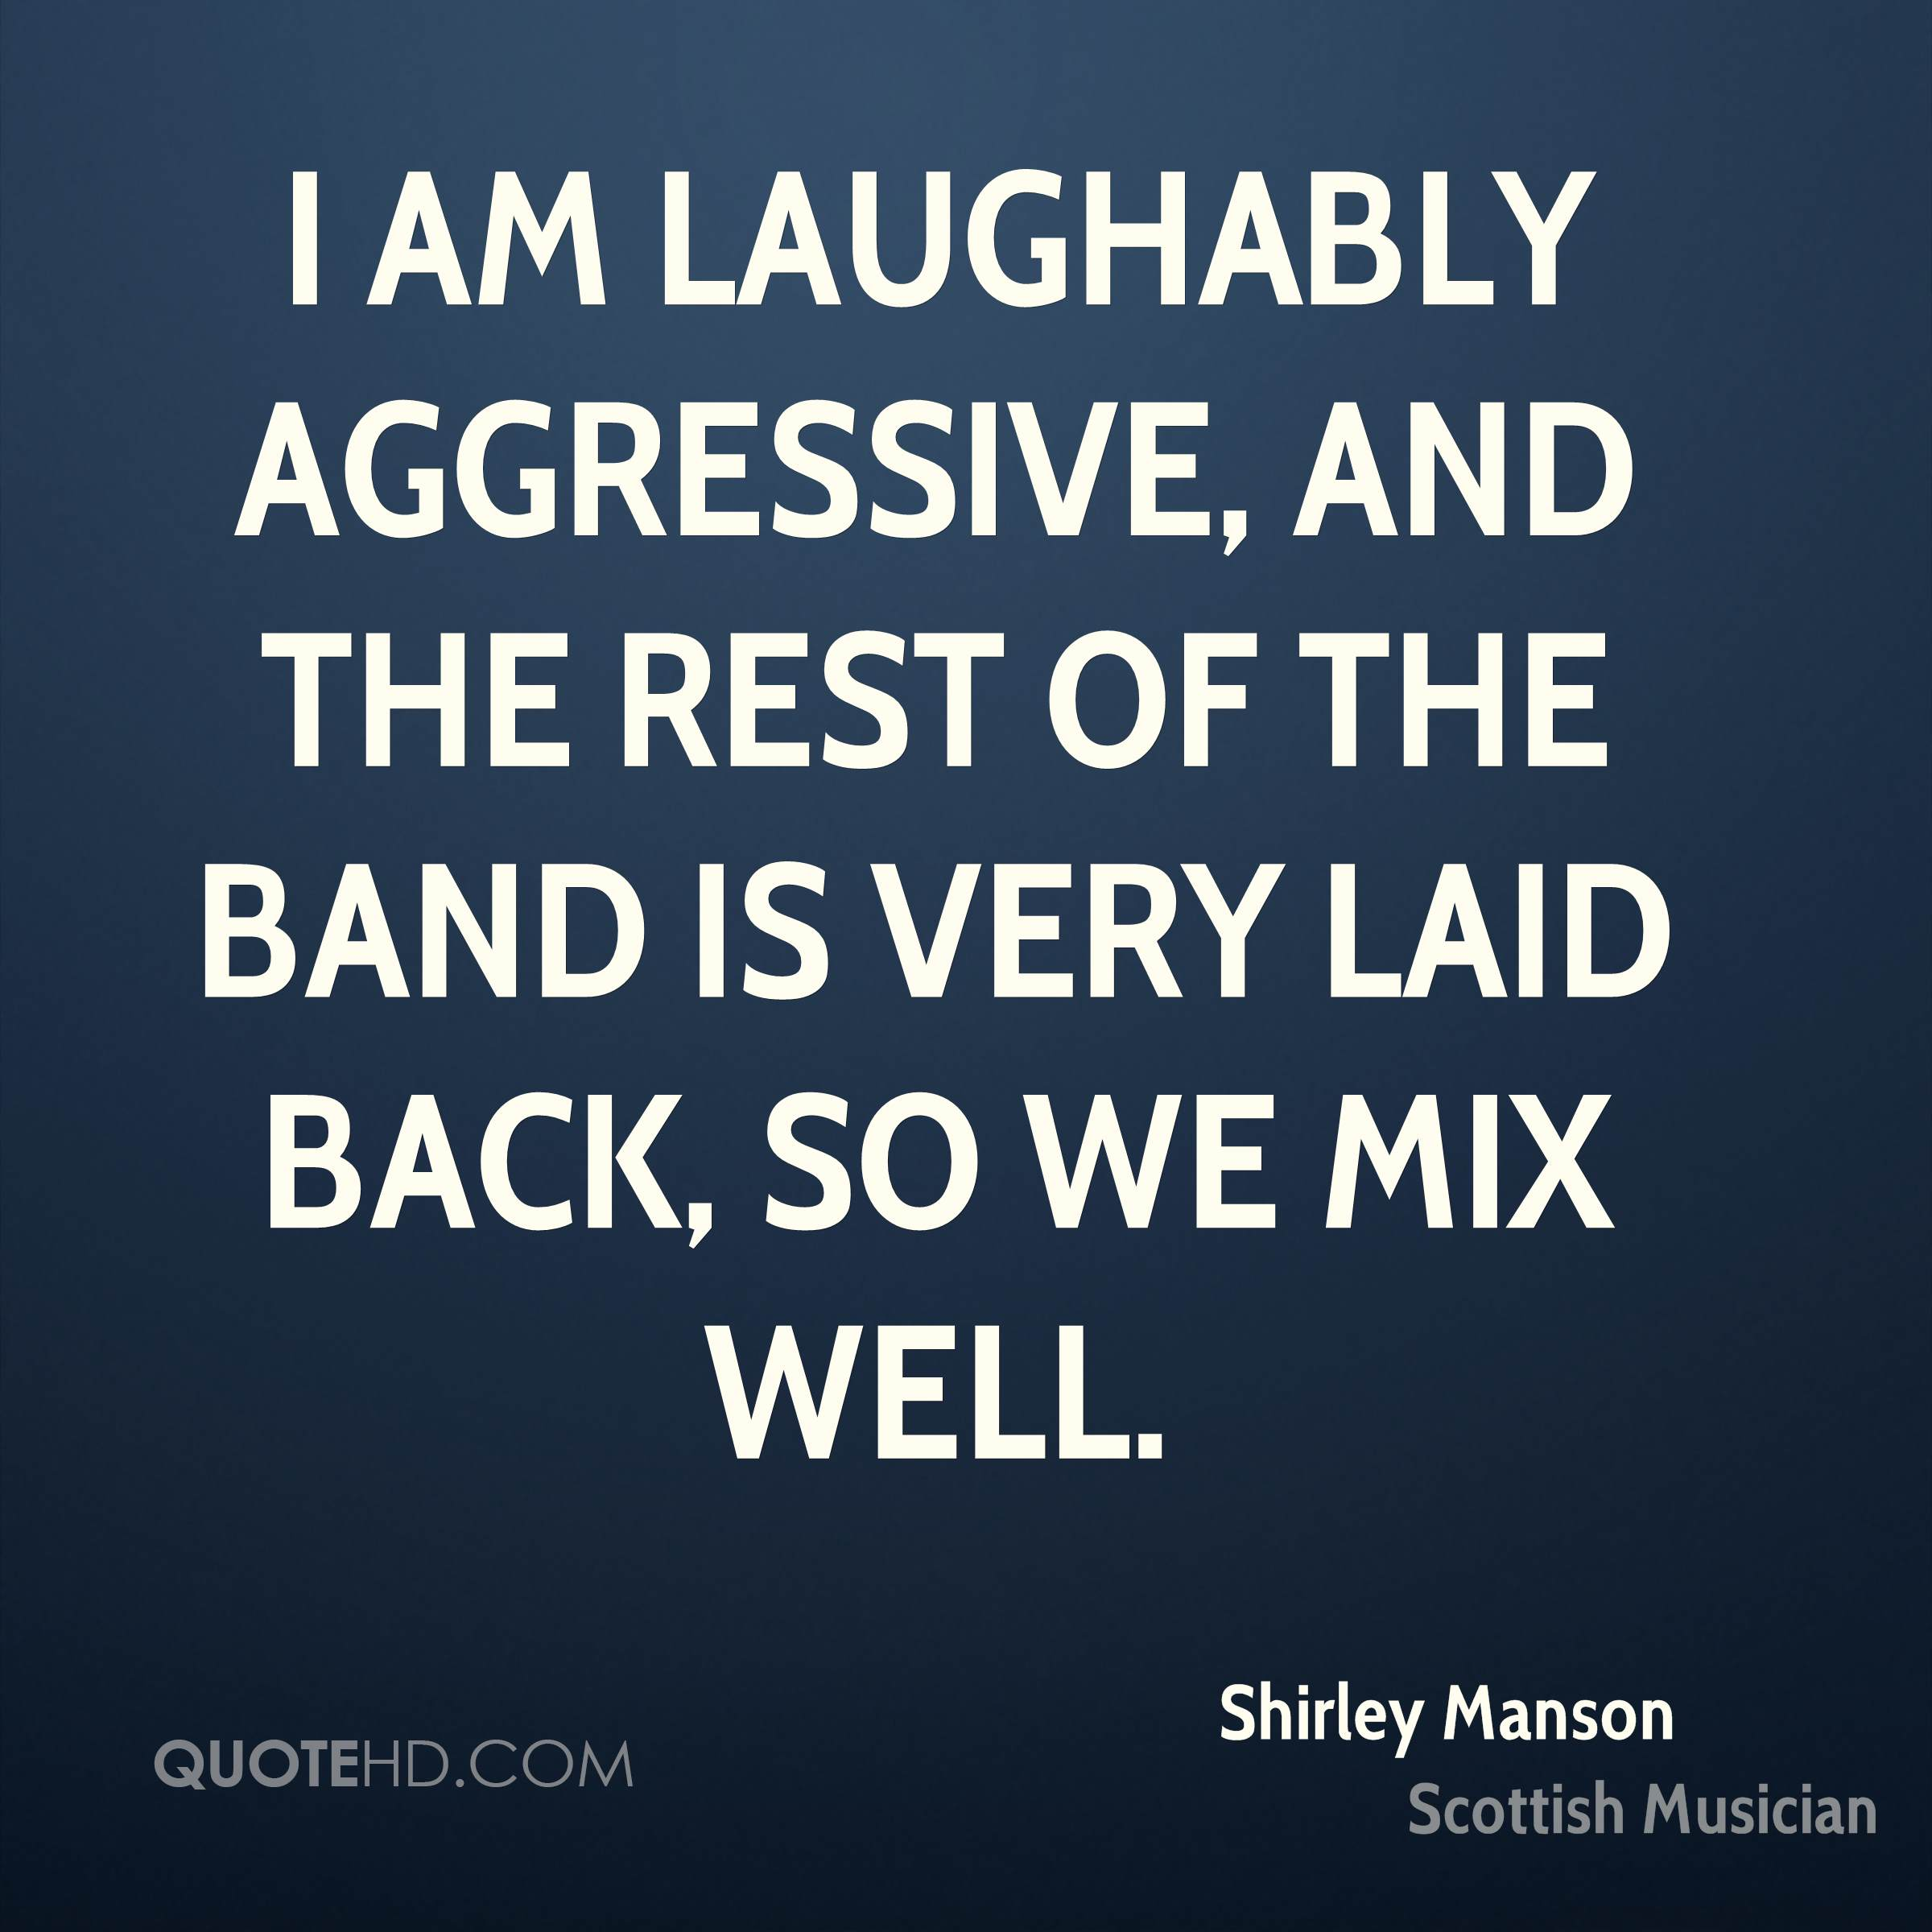 I am laughably aggressive, and the rest of the band is very laid back, so we mix well.